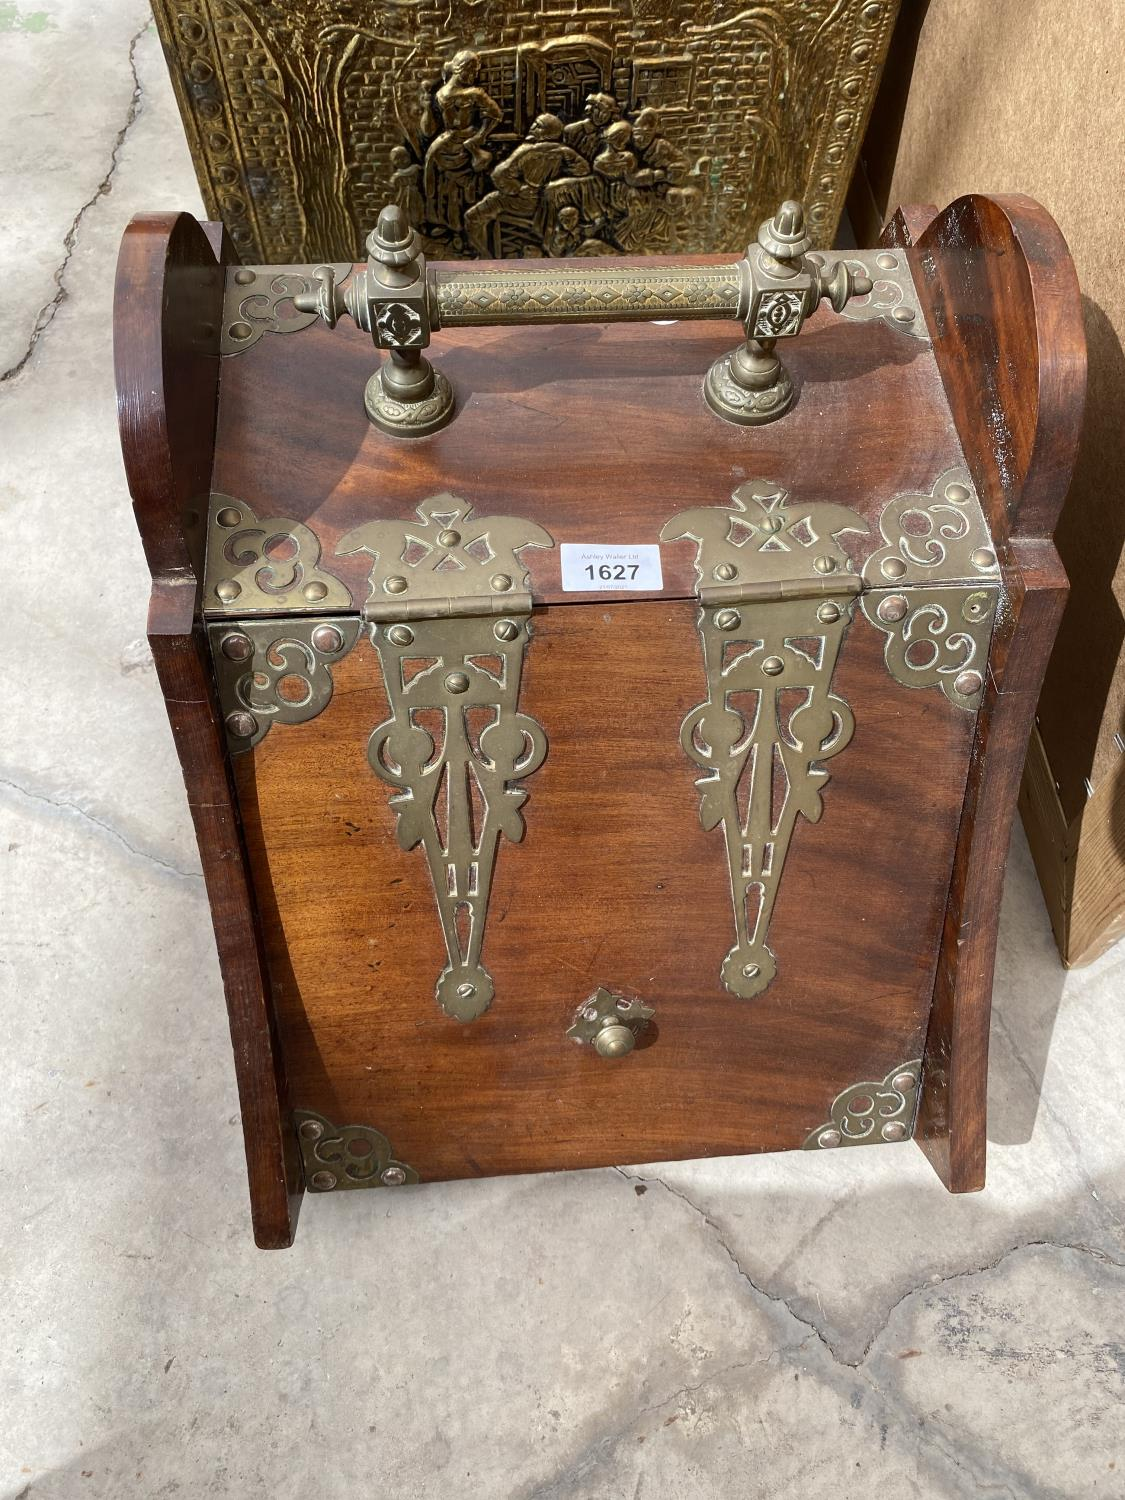 A BRASS LOG BOX, A WOODEN COAL BOX A MIRROR AND AN OIL LAMP - Image 2 of 5